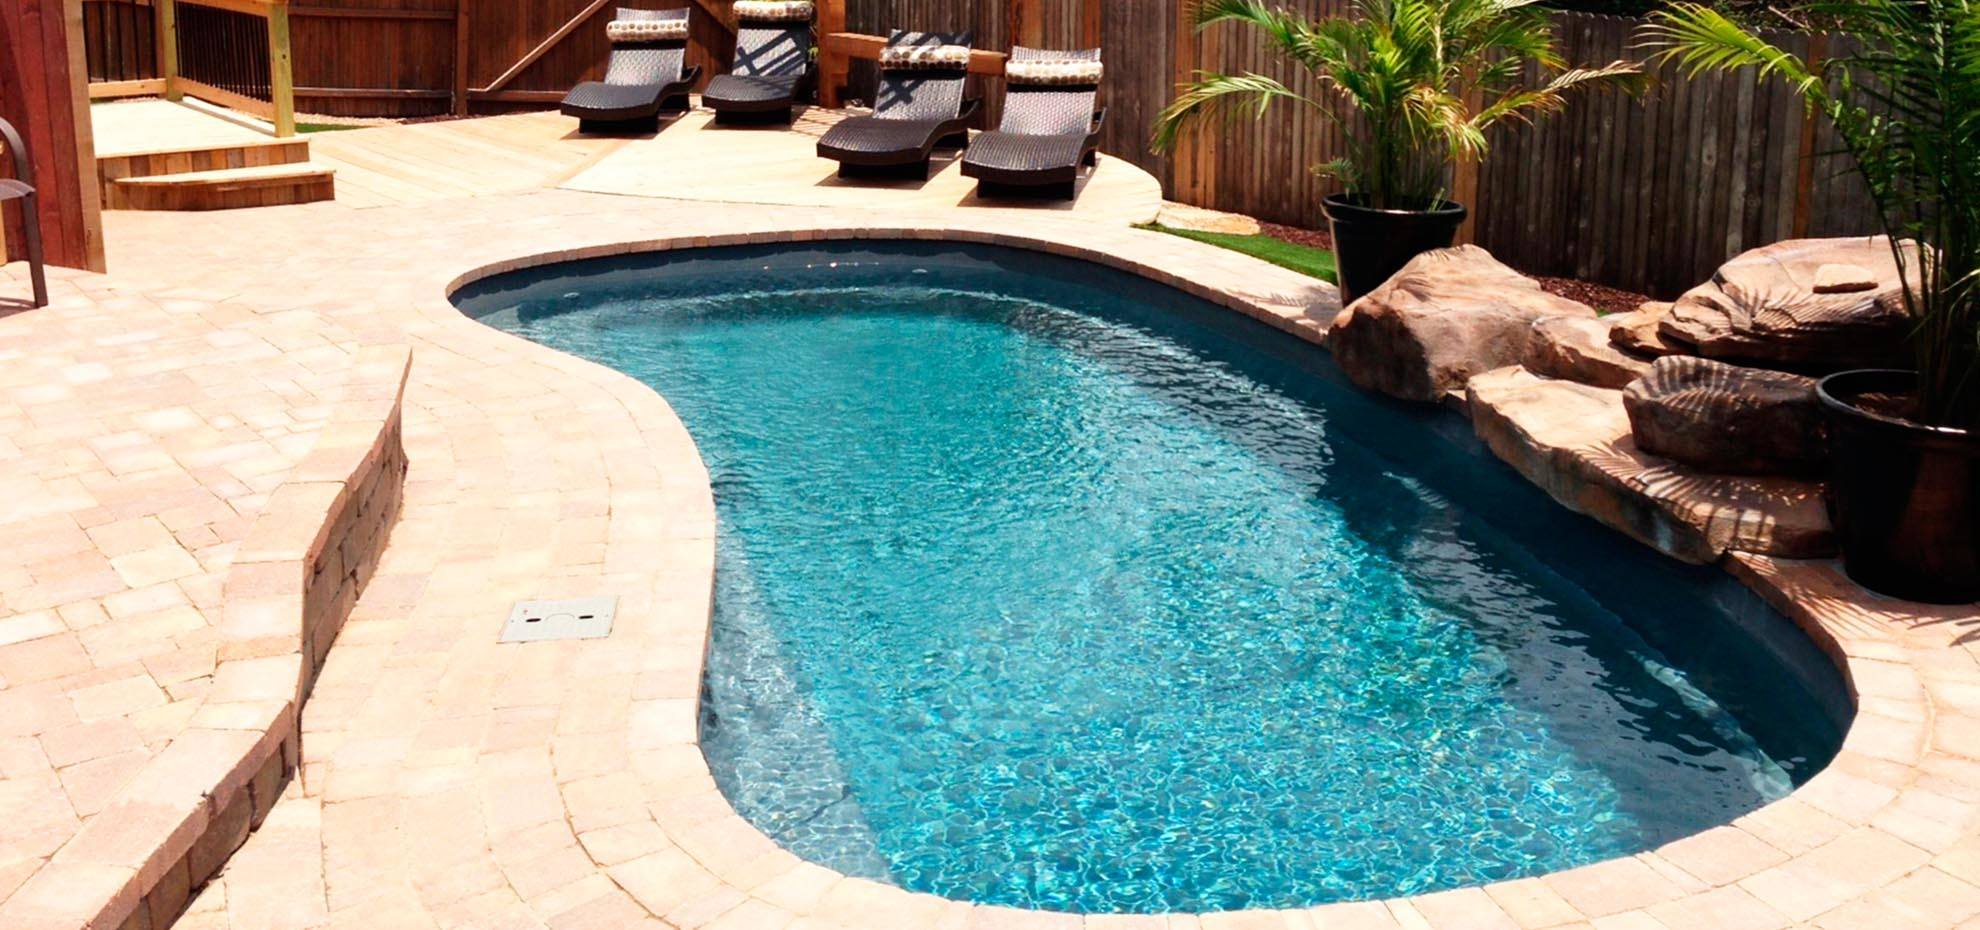 Tuscany Fiberglass Pool with armor stone and coping by Leisure Pool